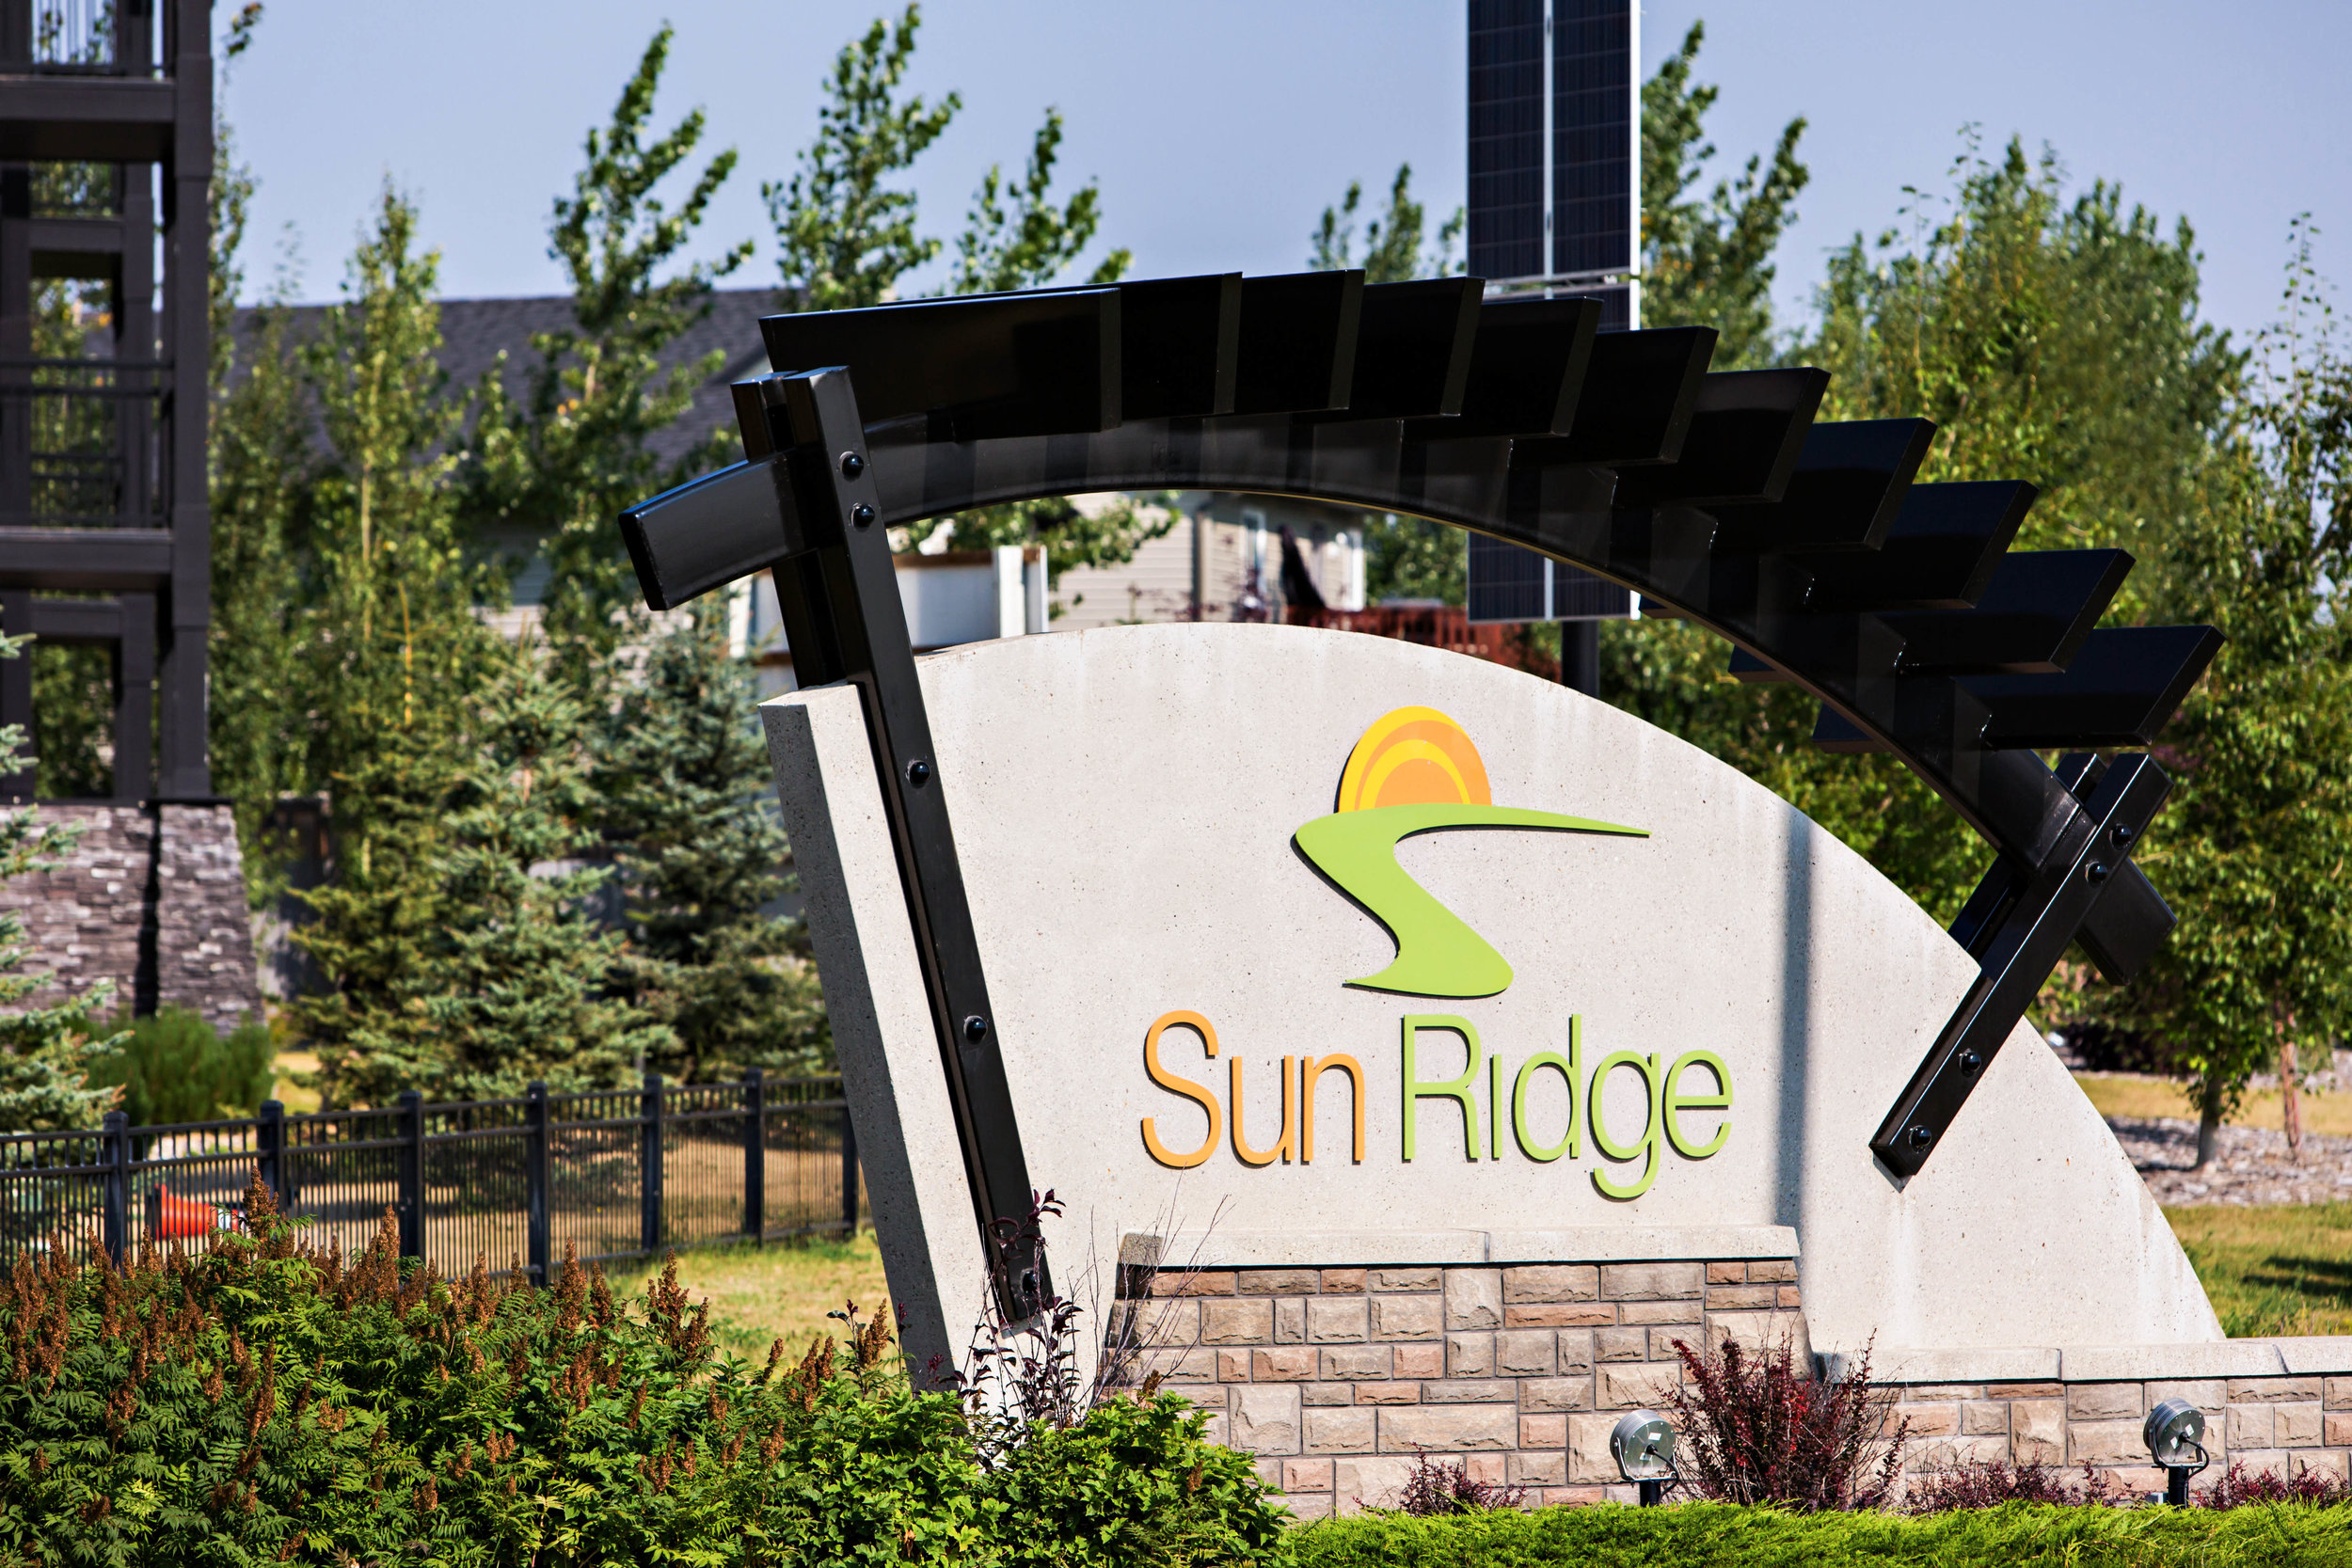 sunridge-035.jpg